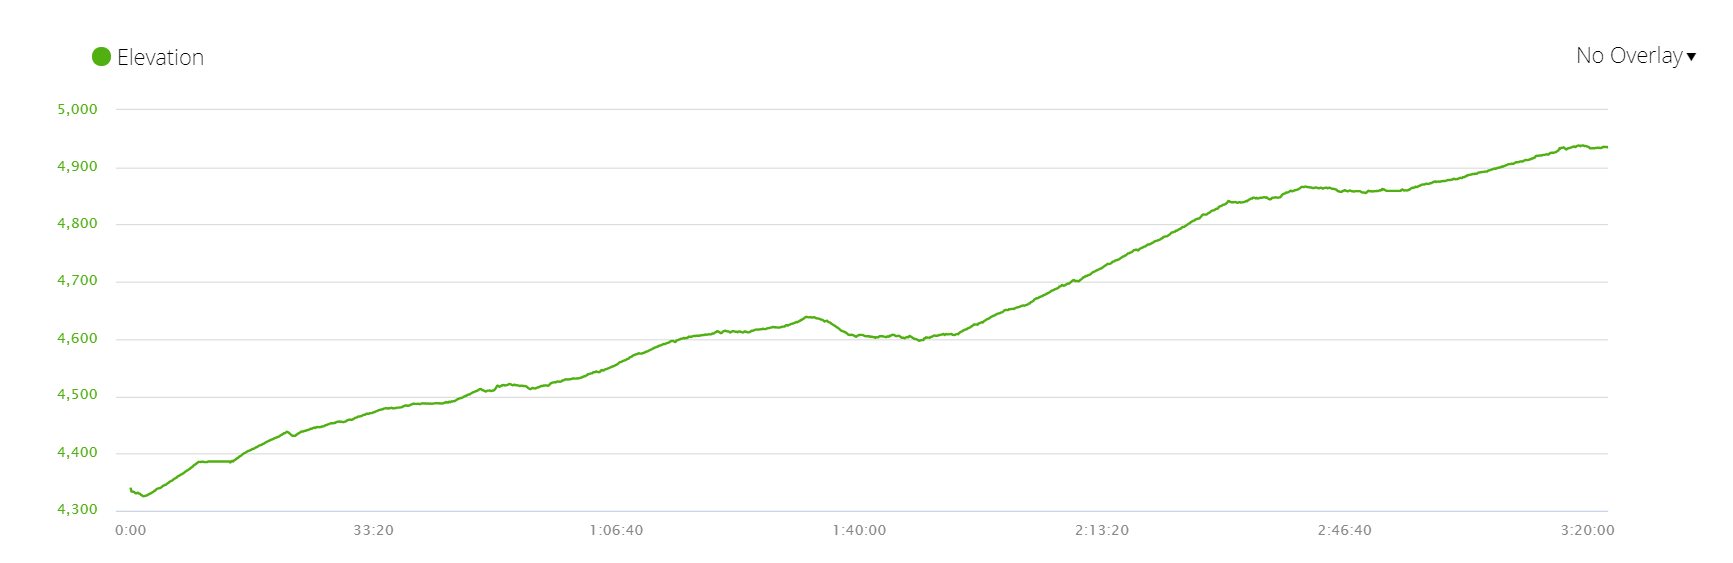 Elevation profile of day 7 of Everest Base Camp trek